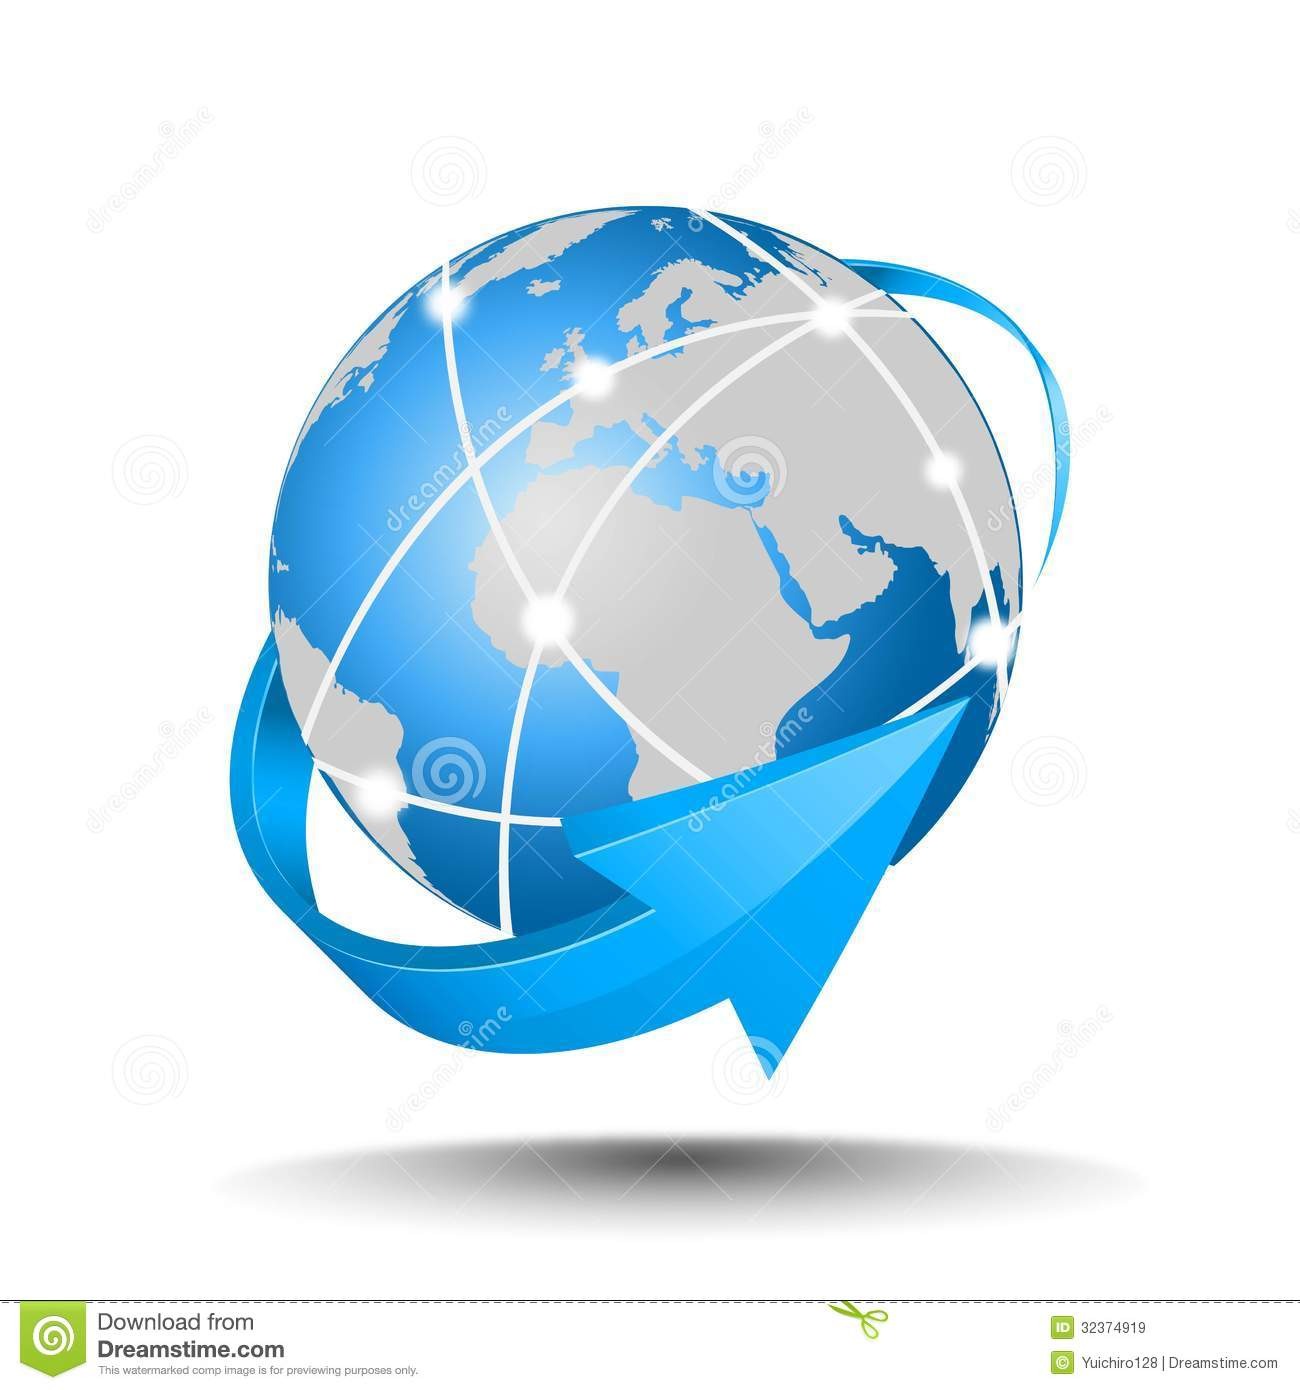 Internet Network Royalty Free Stock Images - Image: 32374919